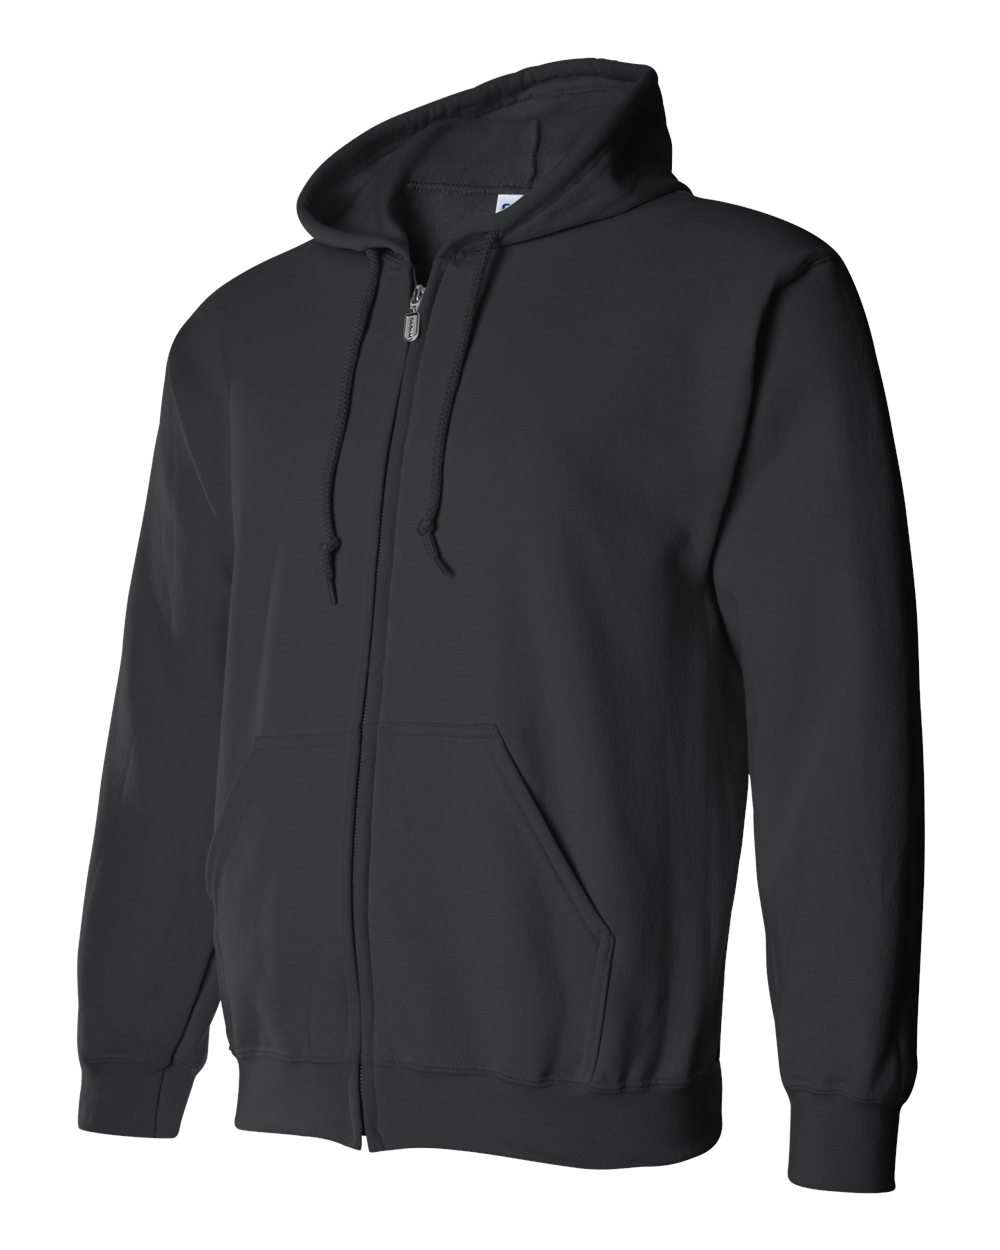 Gildan Heavy Blend Full Zip Hoodie GIL18600 Black